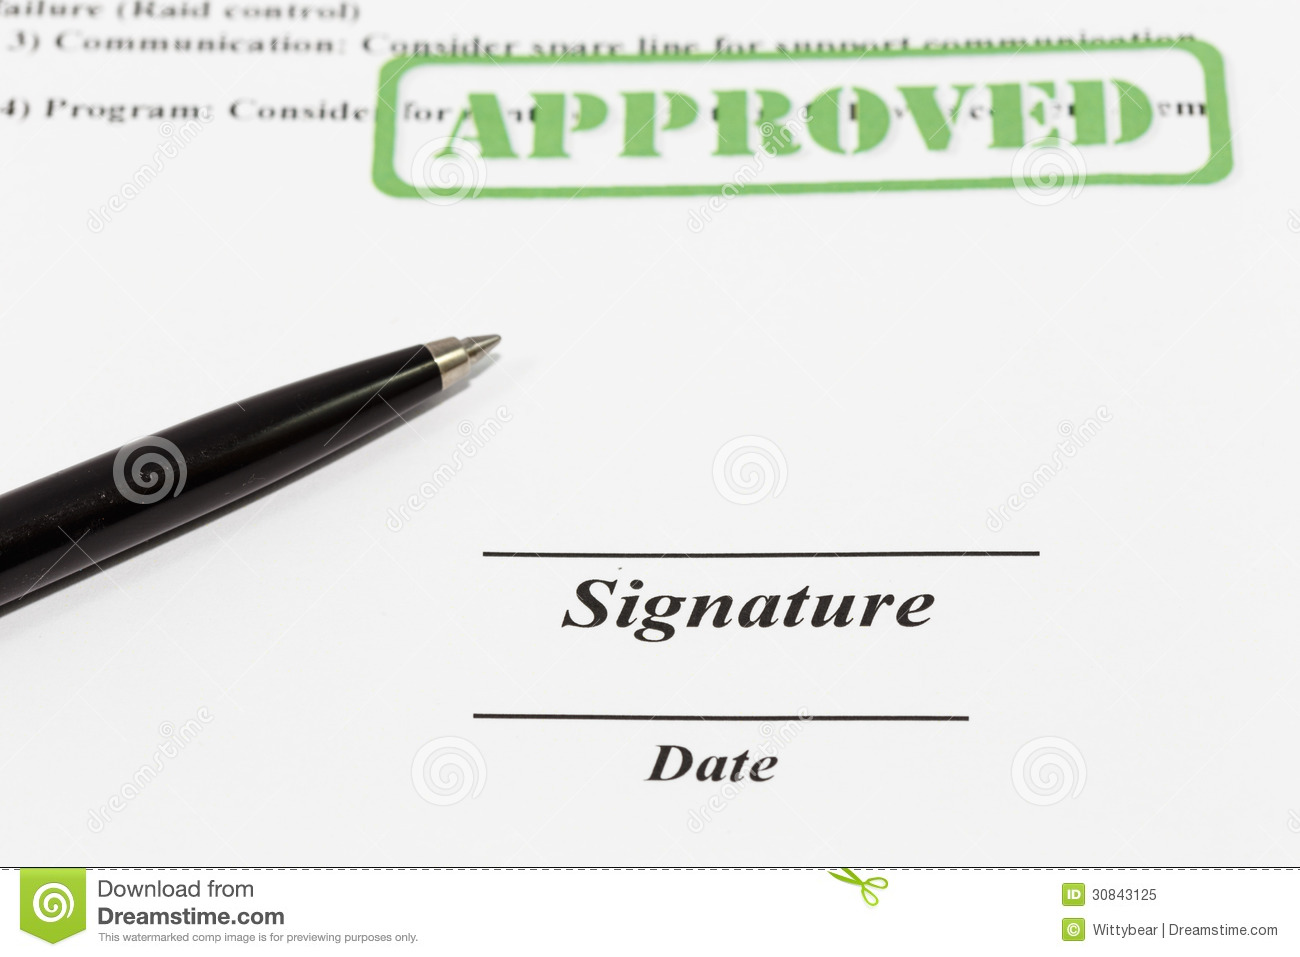 Signing and dating documents